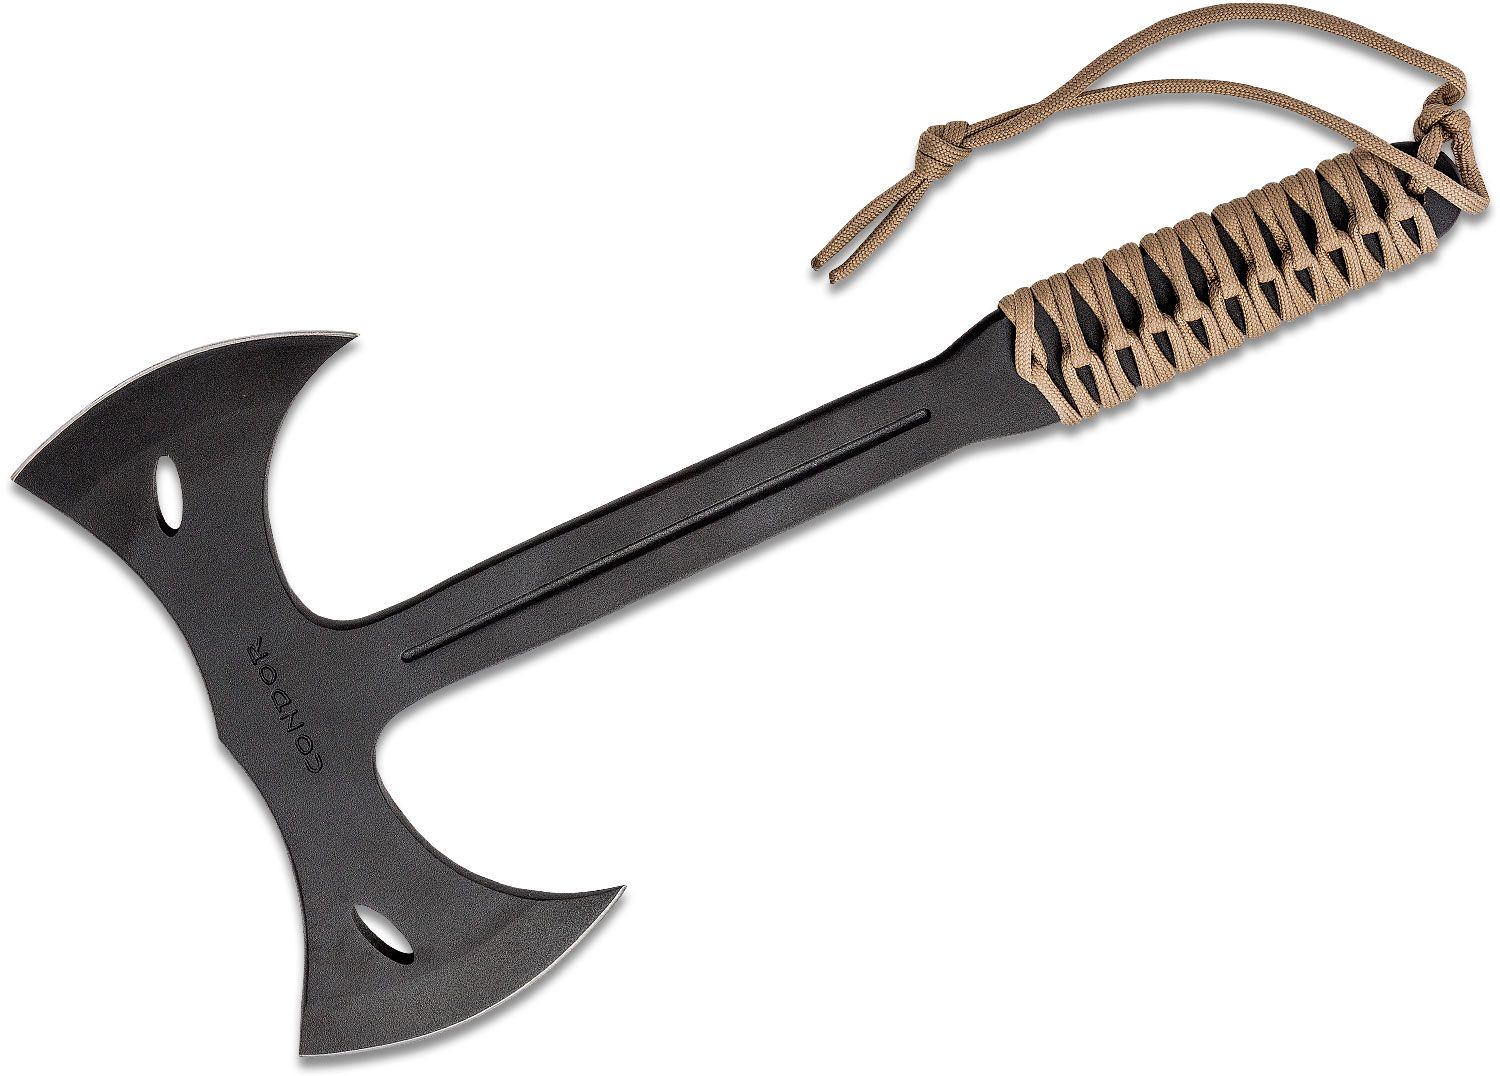 Condor Tool & Knife CTK1402-1.4 Double Bit Throwing Axe 7 inch Carbon Steel Head, Paracord Wrapped Handle, Canvas Sheath